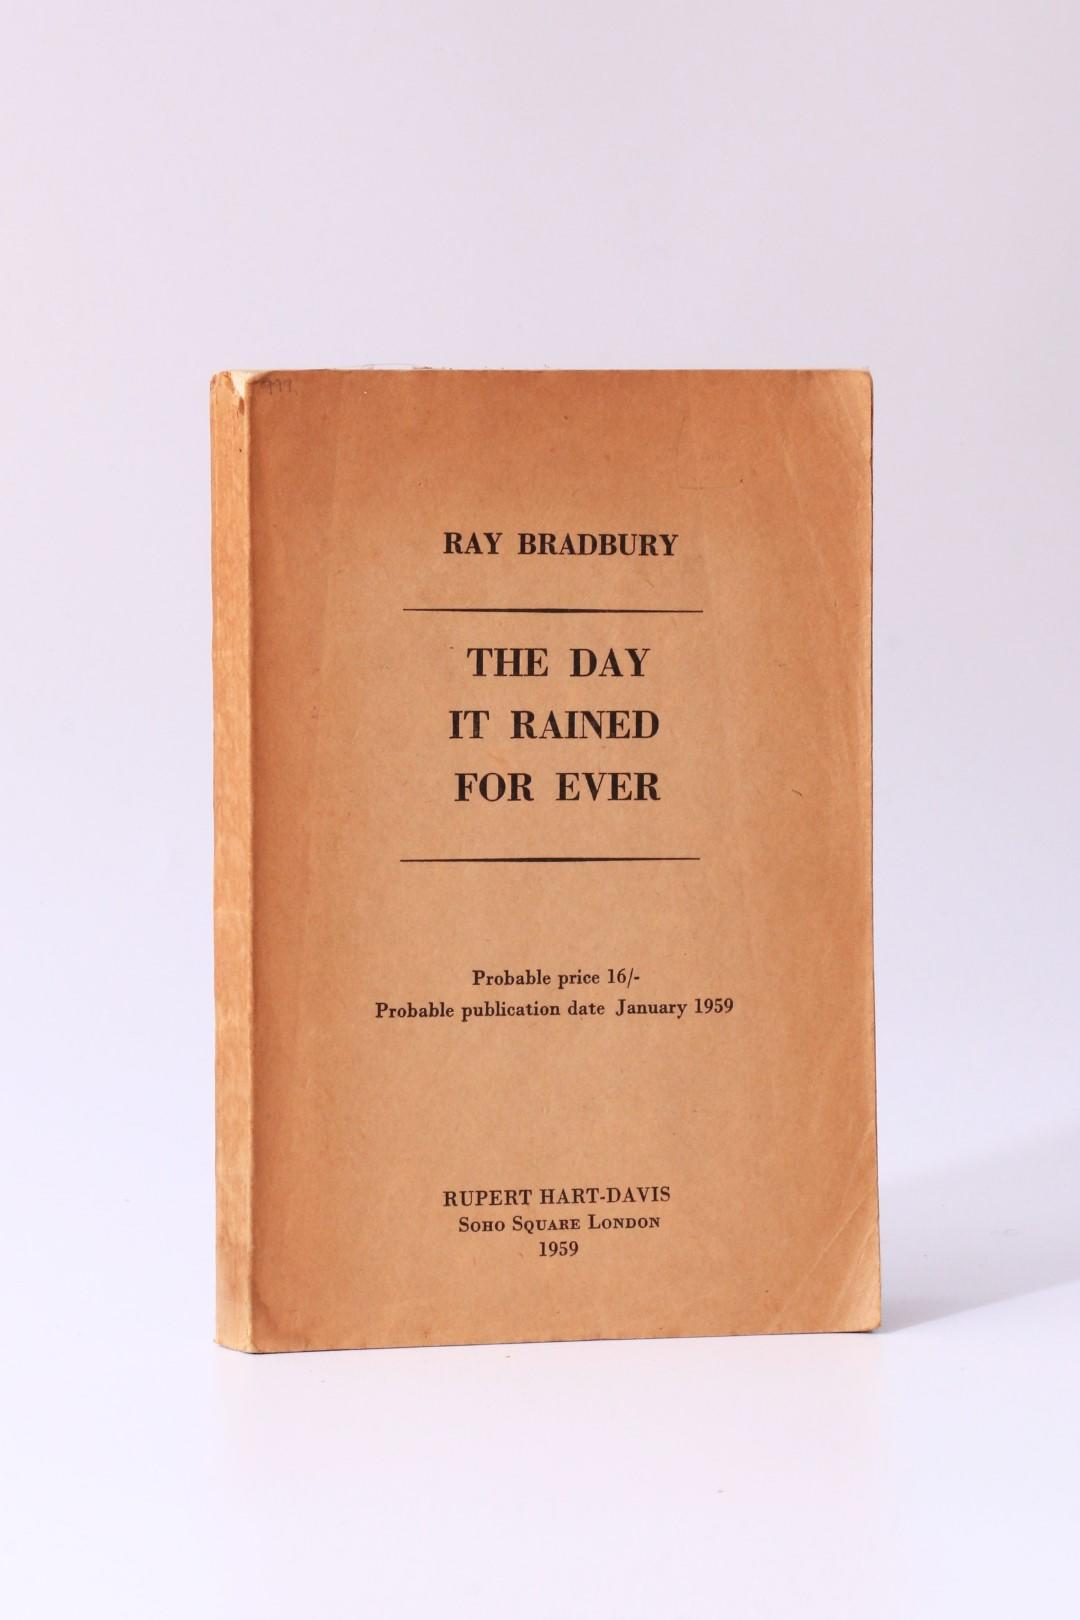 Ray Bradbury - The Day it Rained For Ever - Rupert Hart-Davis, 1959, Proof.